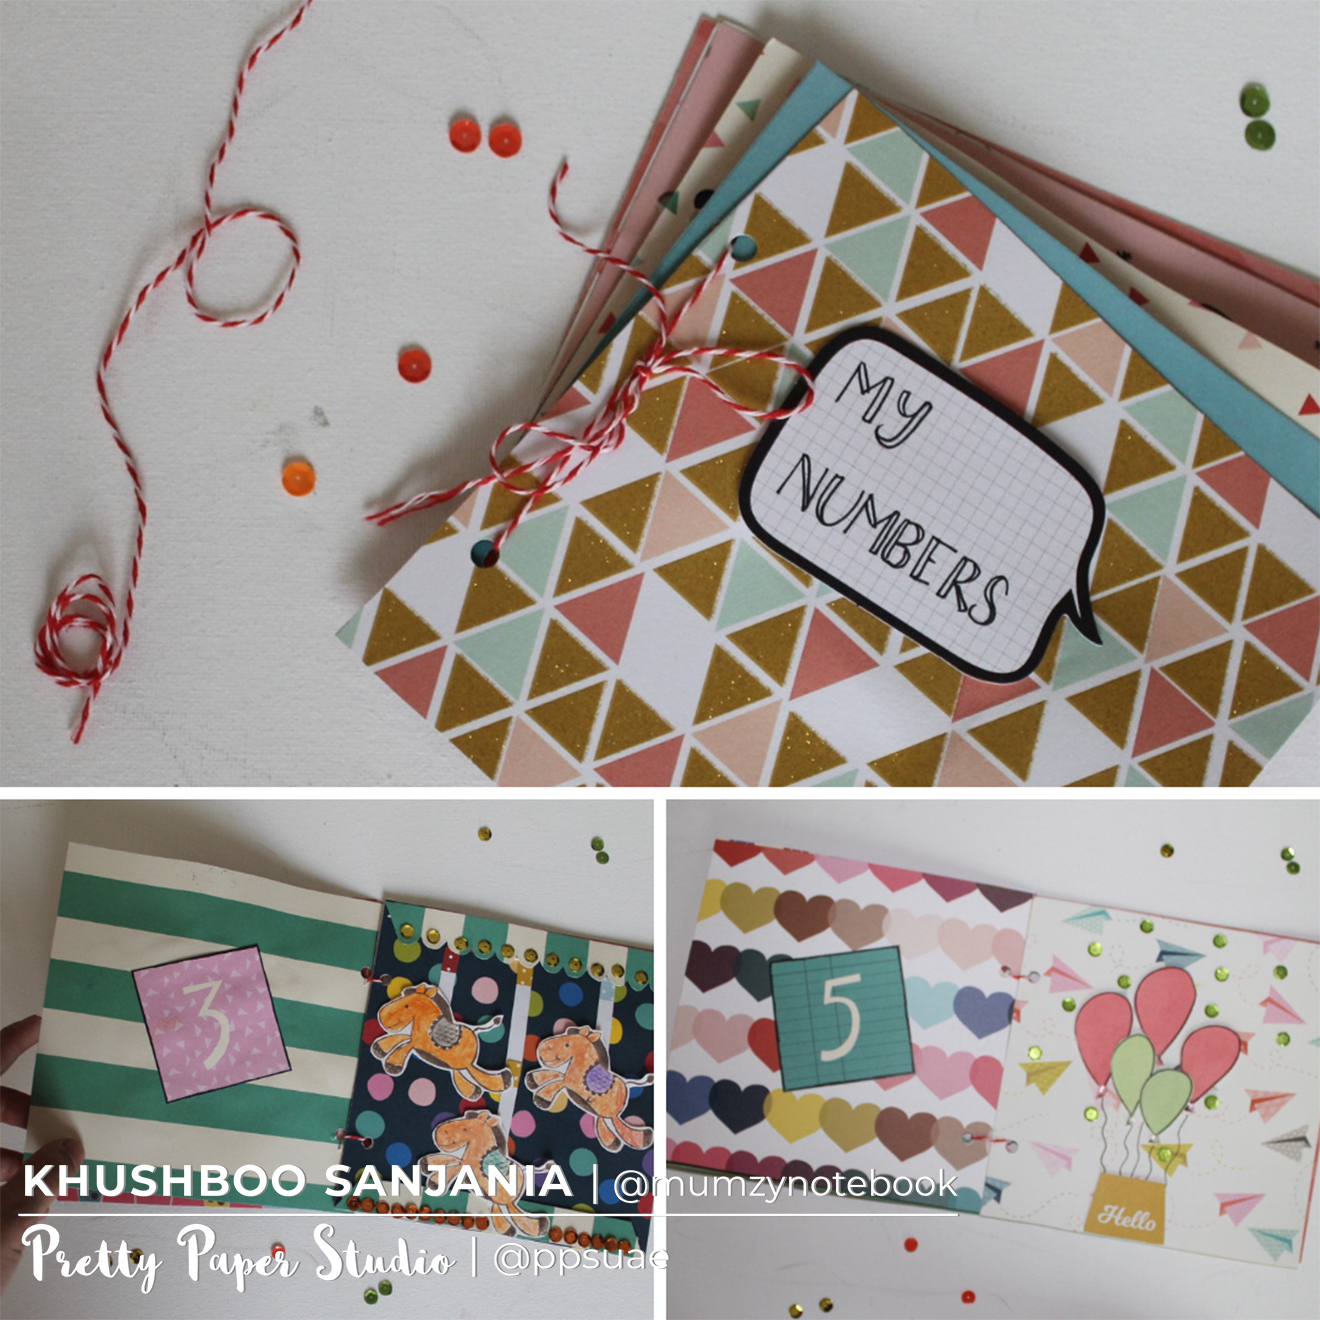 Tutorial: Make a Child's Number Book | Ink and other mediums